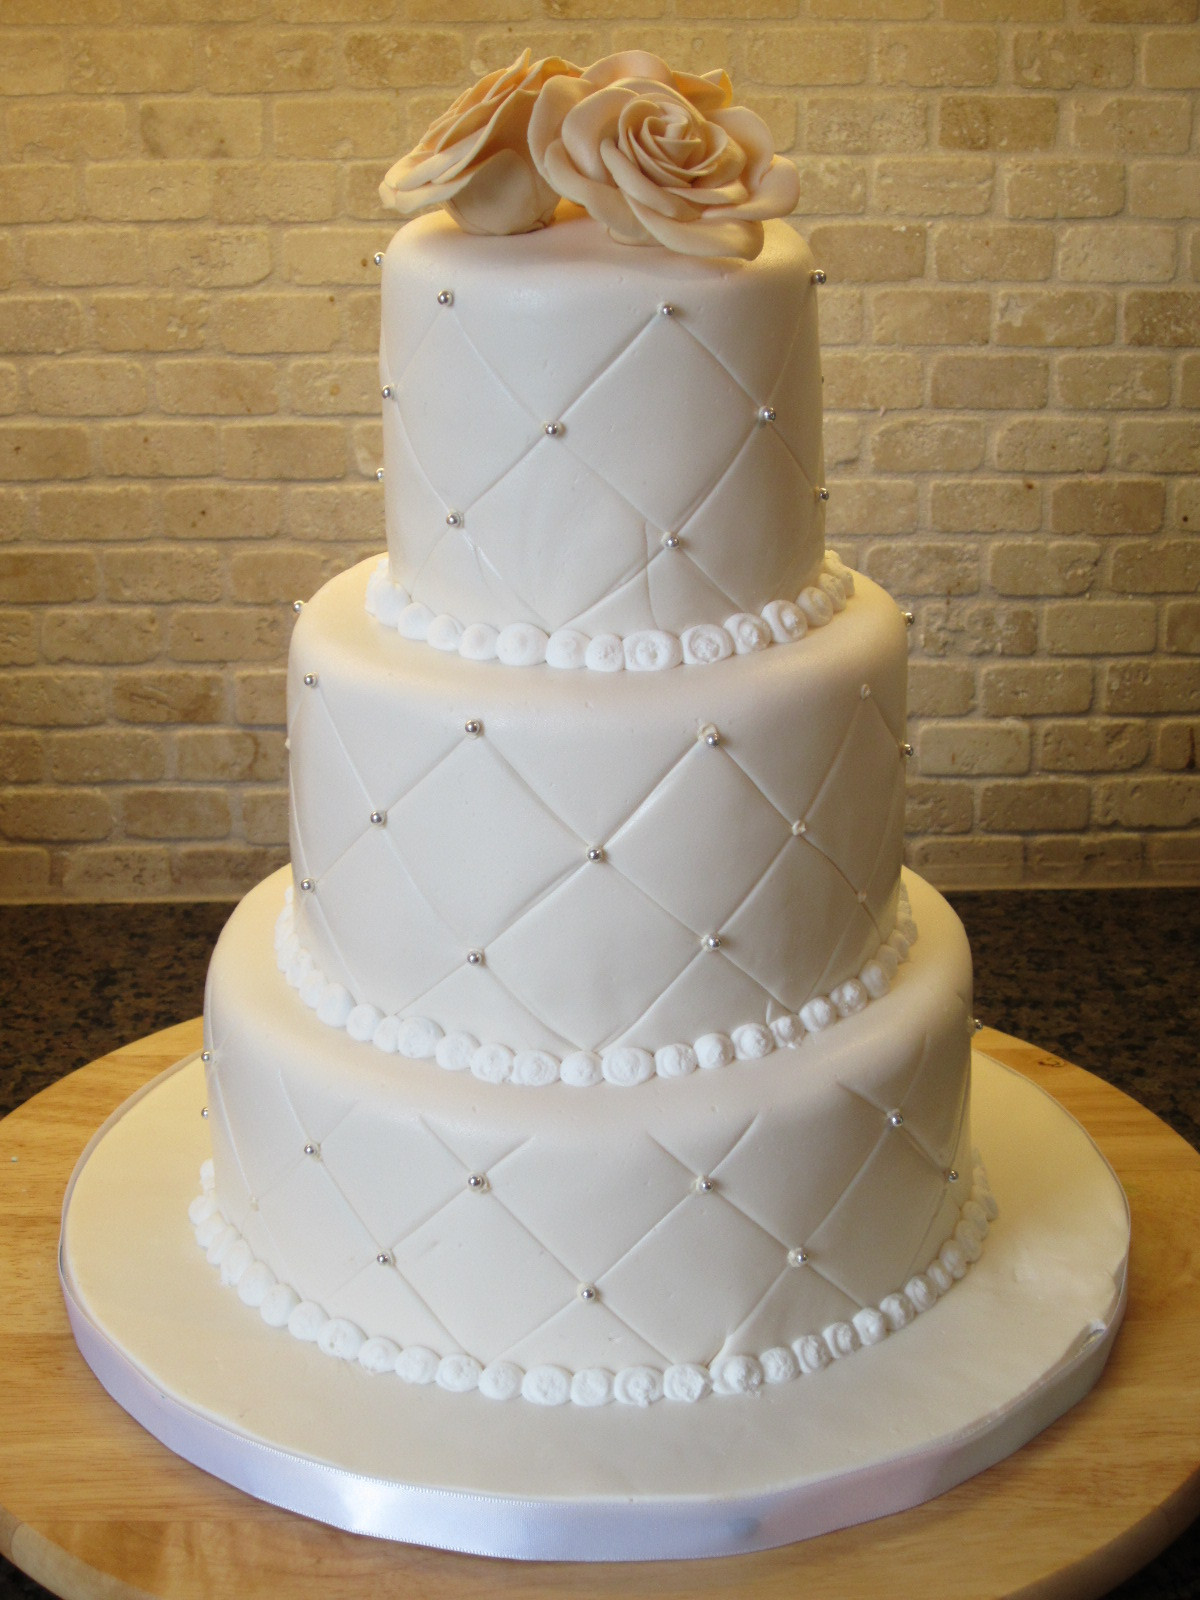 Wedding Cakes Houston  Wedding cakes Houston Tx Get affordable cheap priced